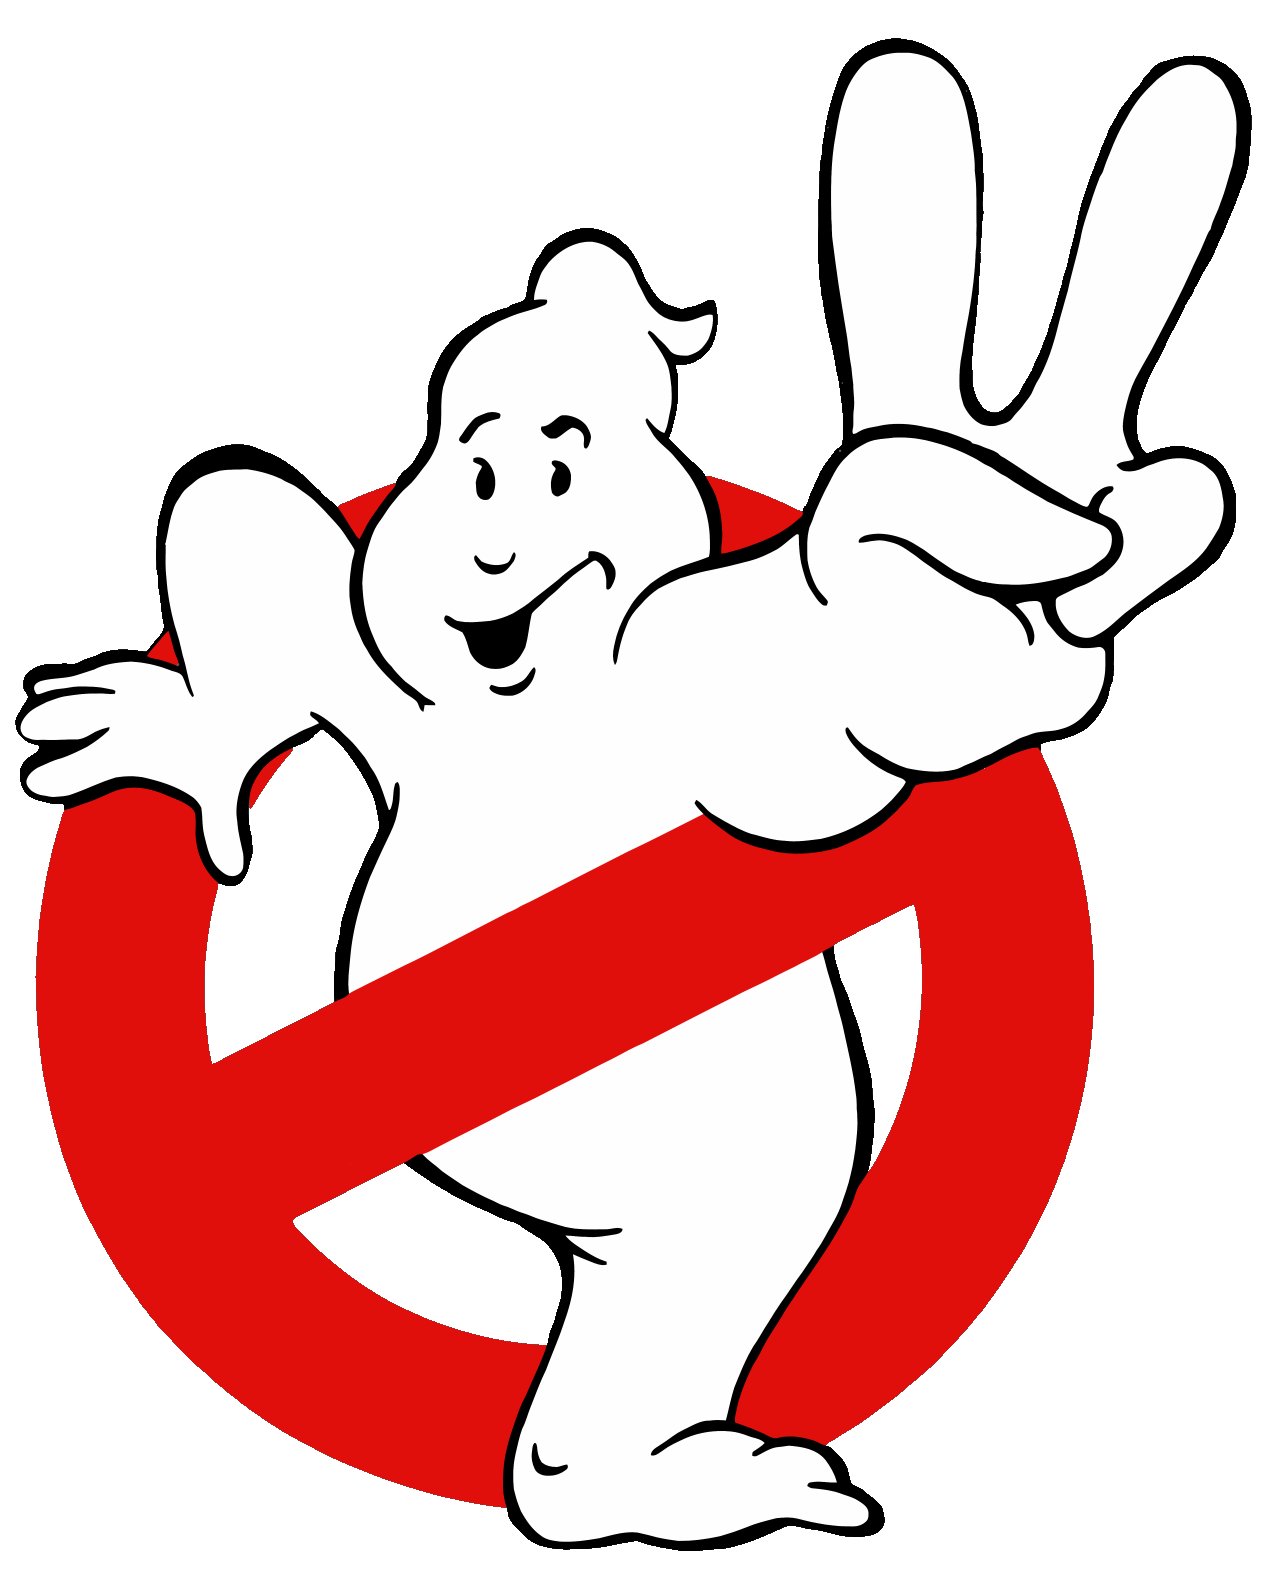 New ghostbusters ii white facial expression mammal vertebrate black and white hand finger fictional character emotion